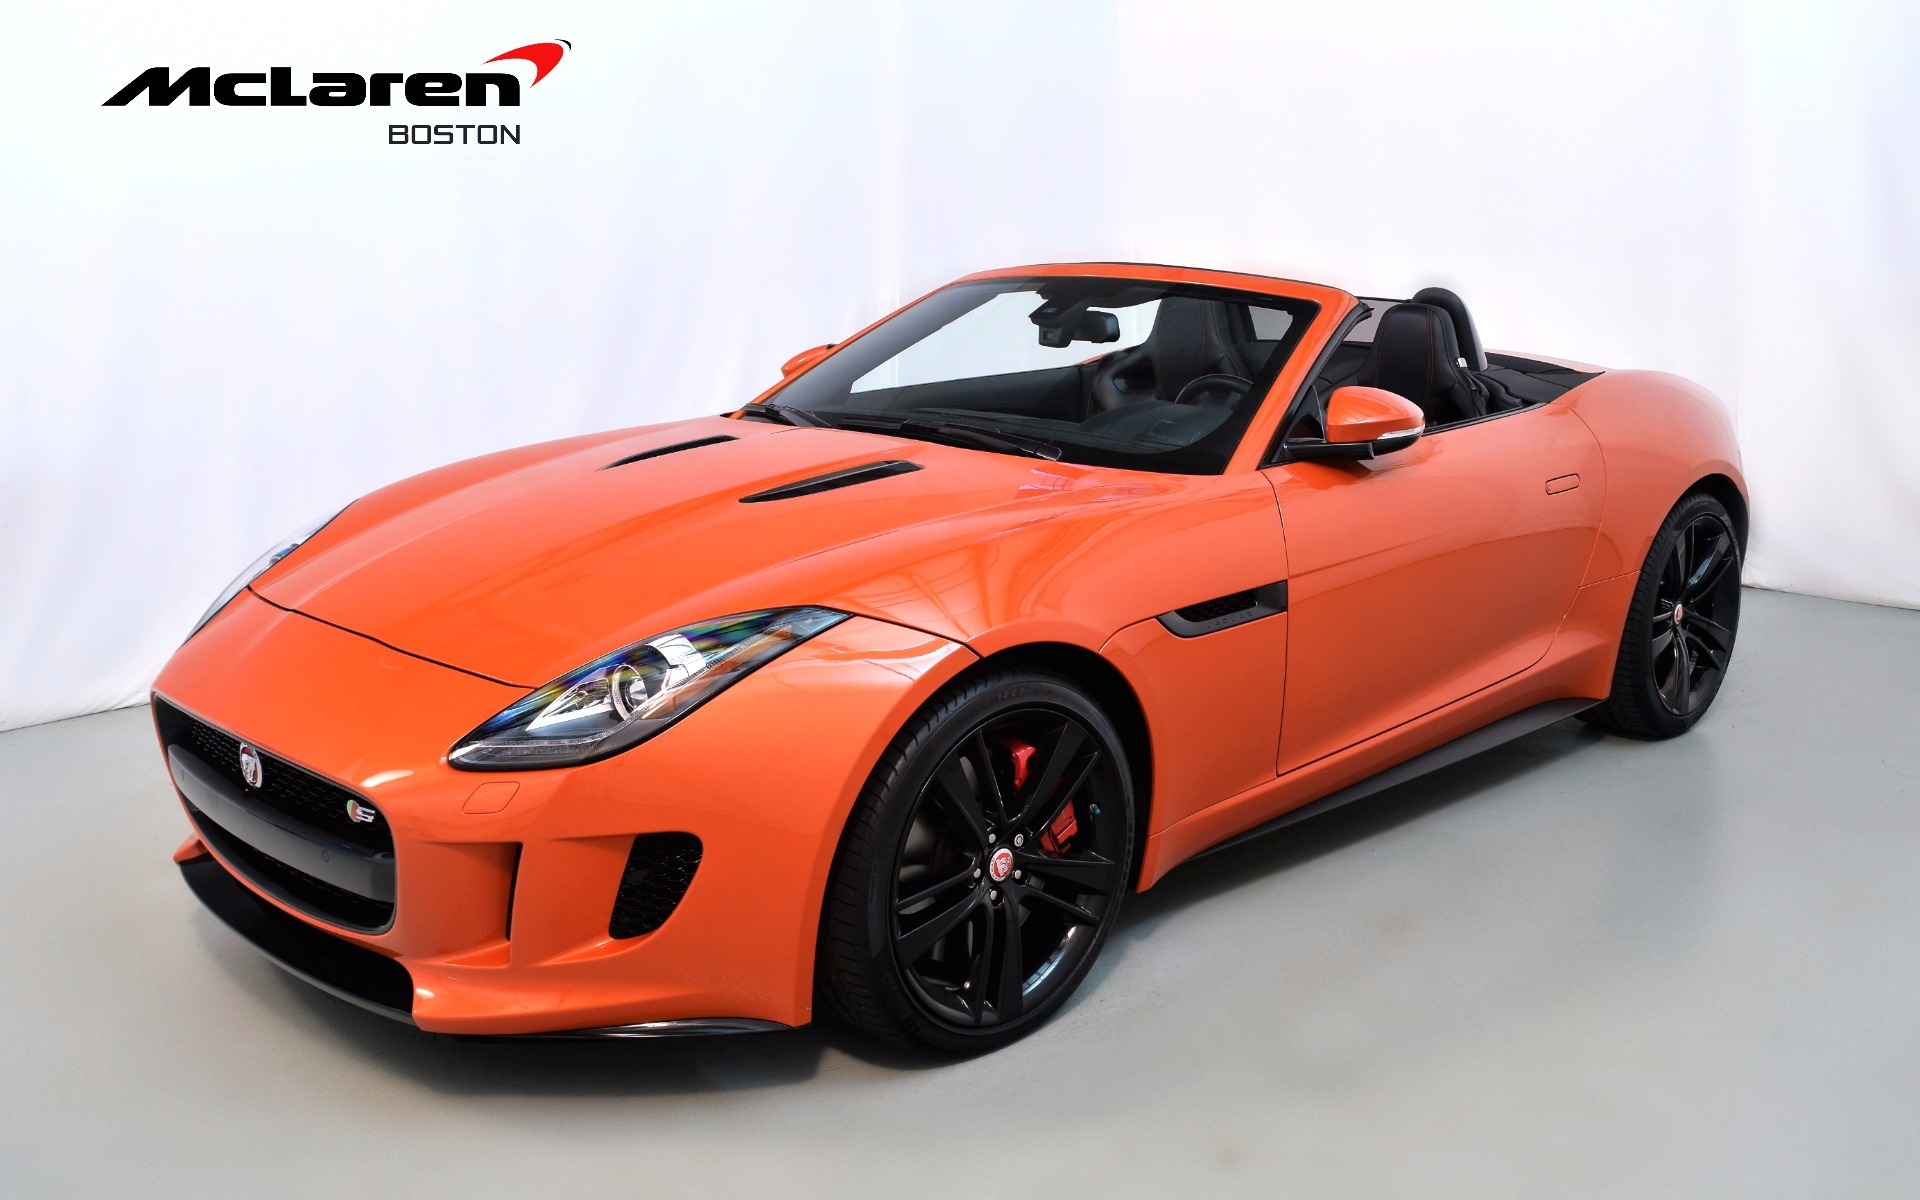 2015 jaguar f type v8 s v8 s for sale in norwell ma k13061 mclaren boston. Black Bedroom Furniture Sets. Home Design Ideas